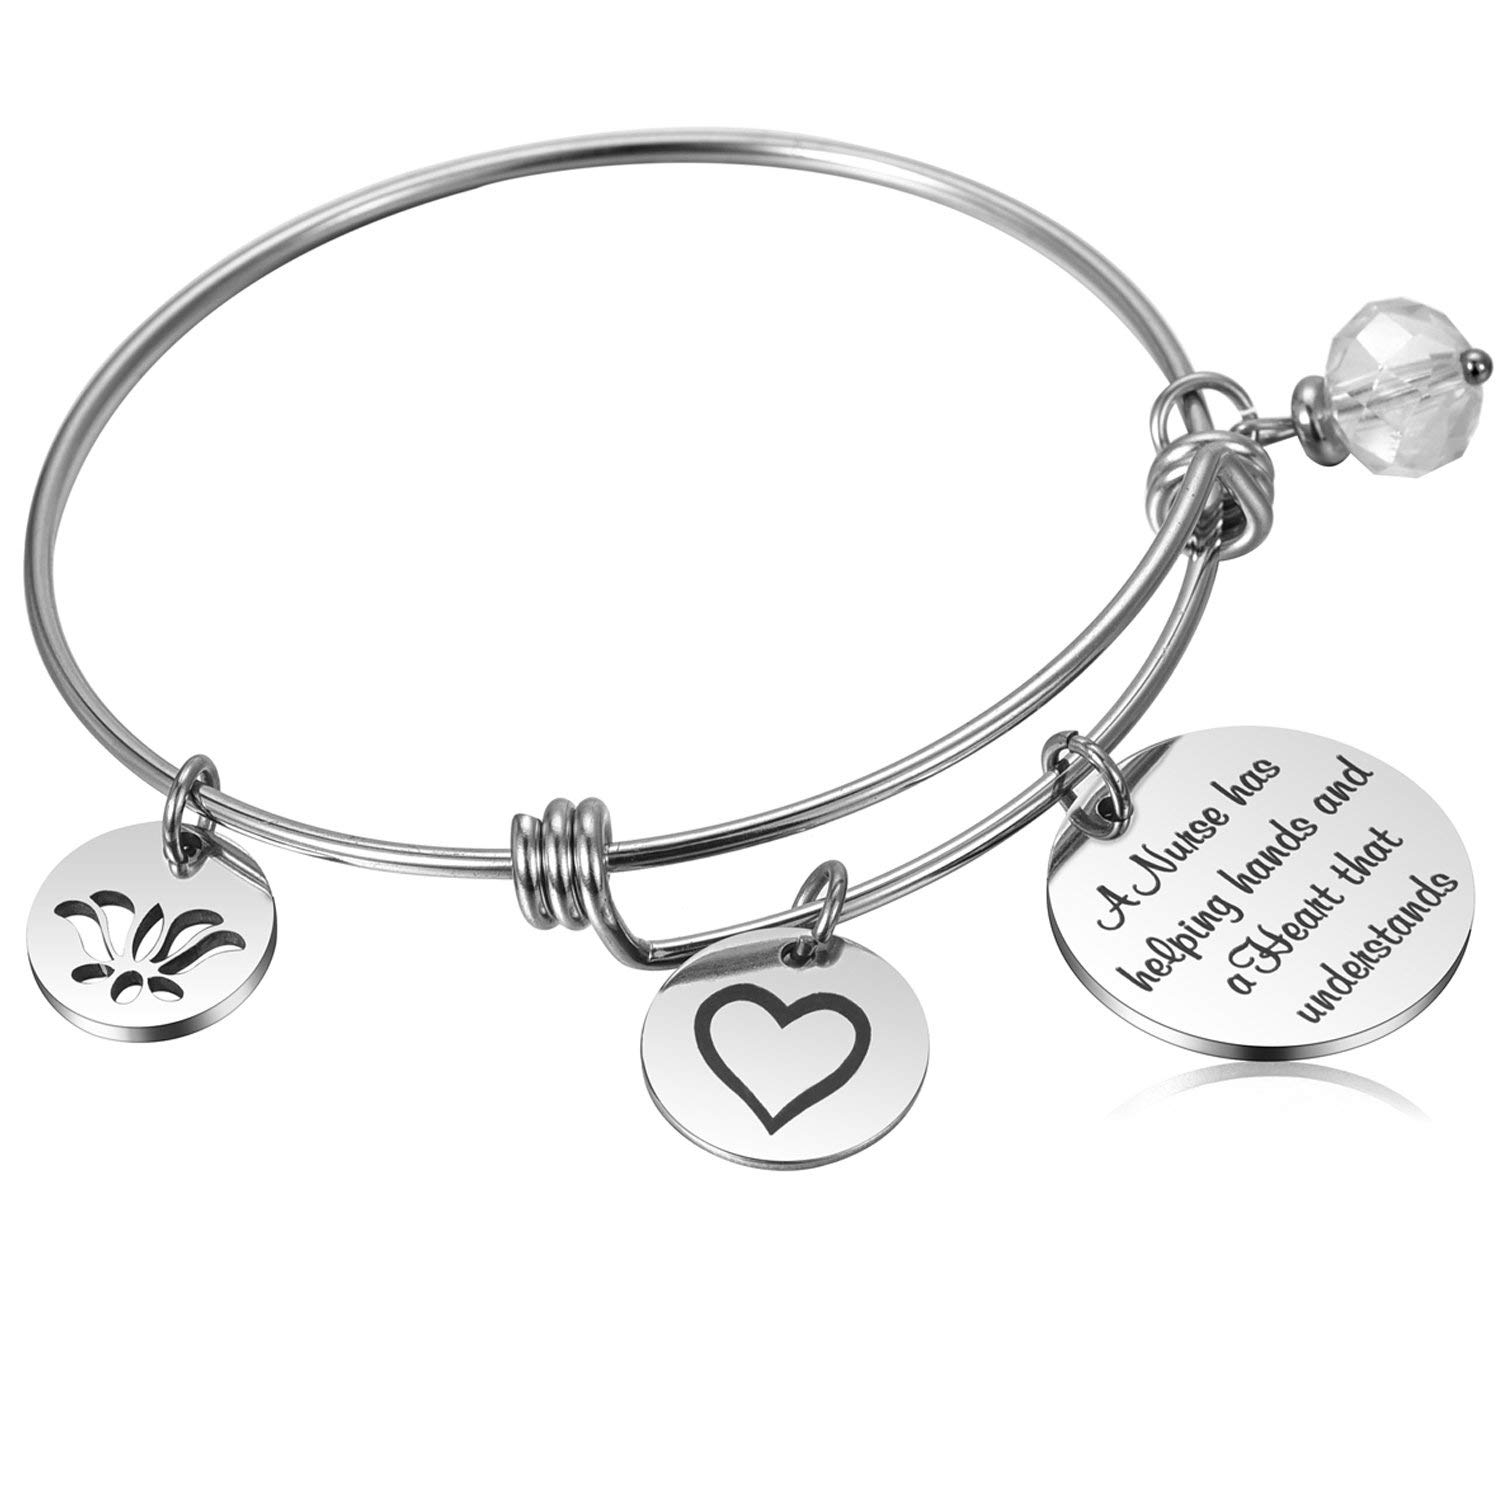 Get Quotations Nurse Practitioner Gifts Nursing Assistant Bracelet Appreciation For Graduation Birthday Retirement